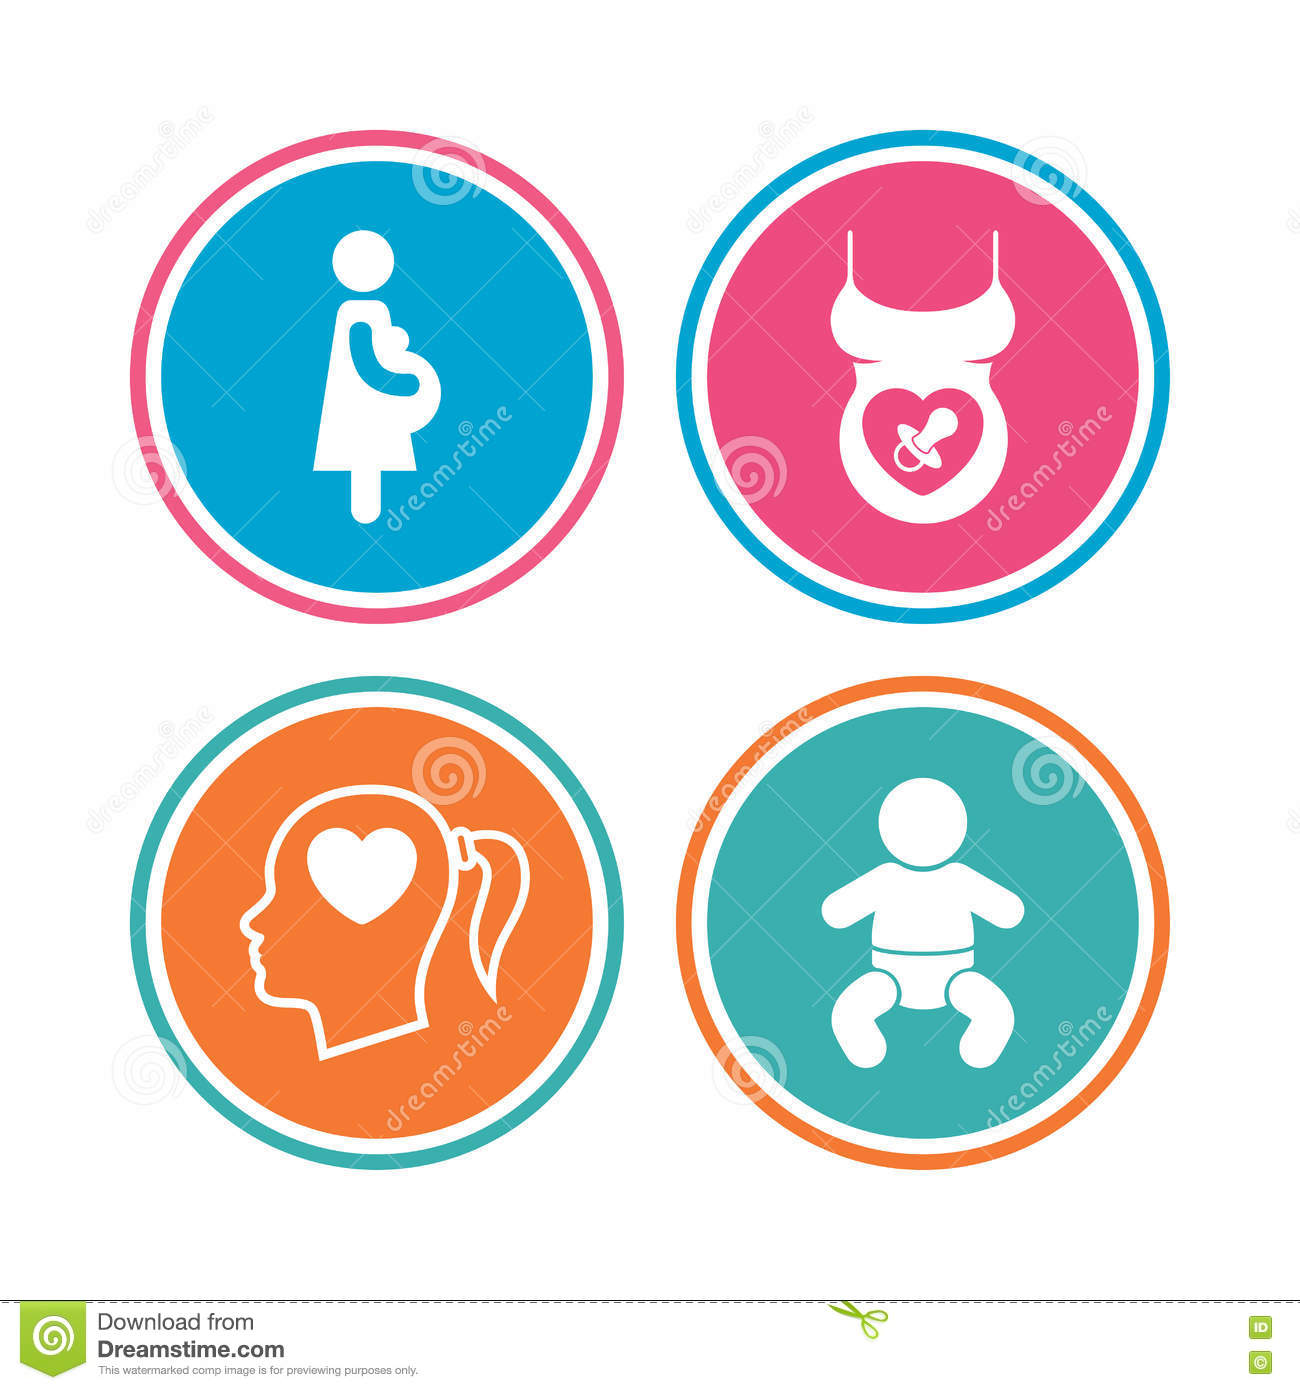 pregnancy infancy Evidence-based information on nutrition and lifestyle for pregnancy and infancy to help keep mum and baby healthy.